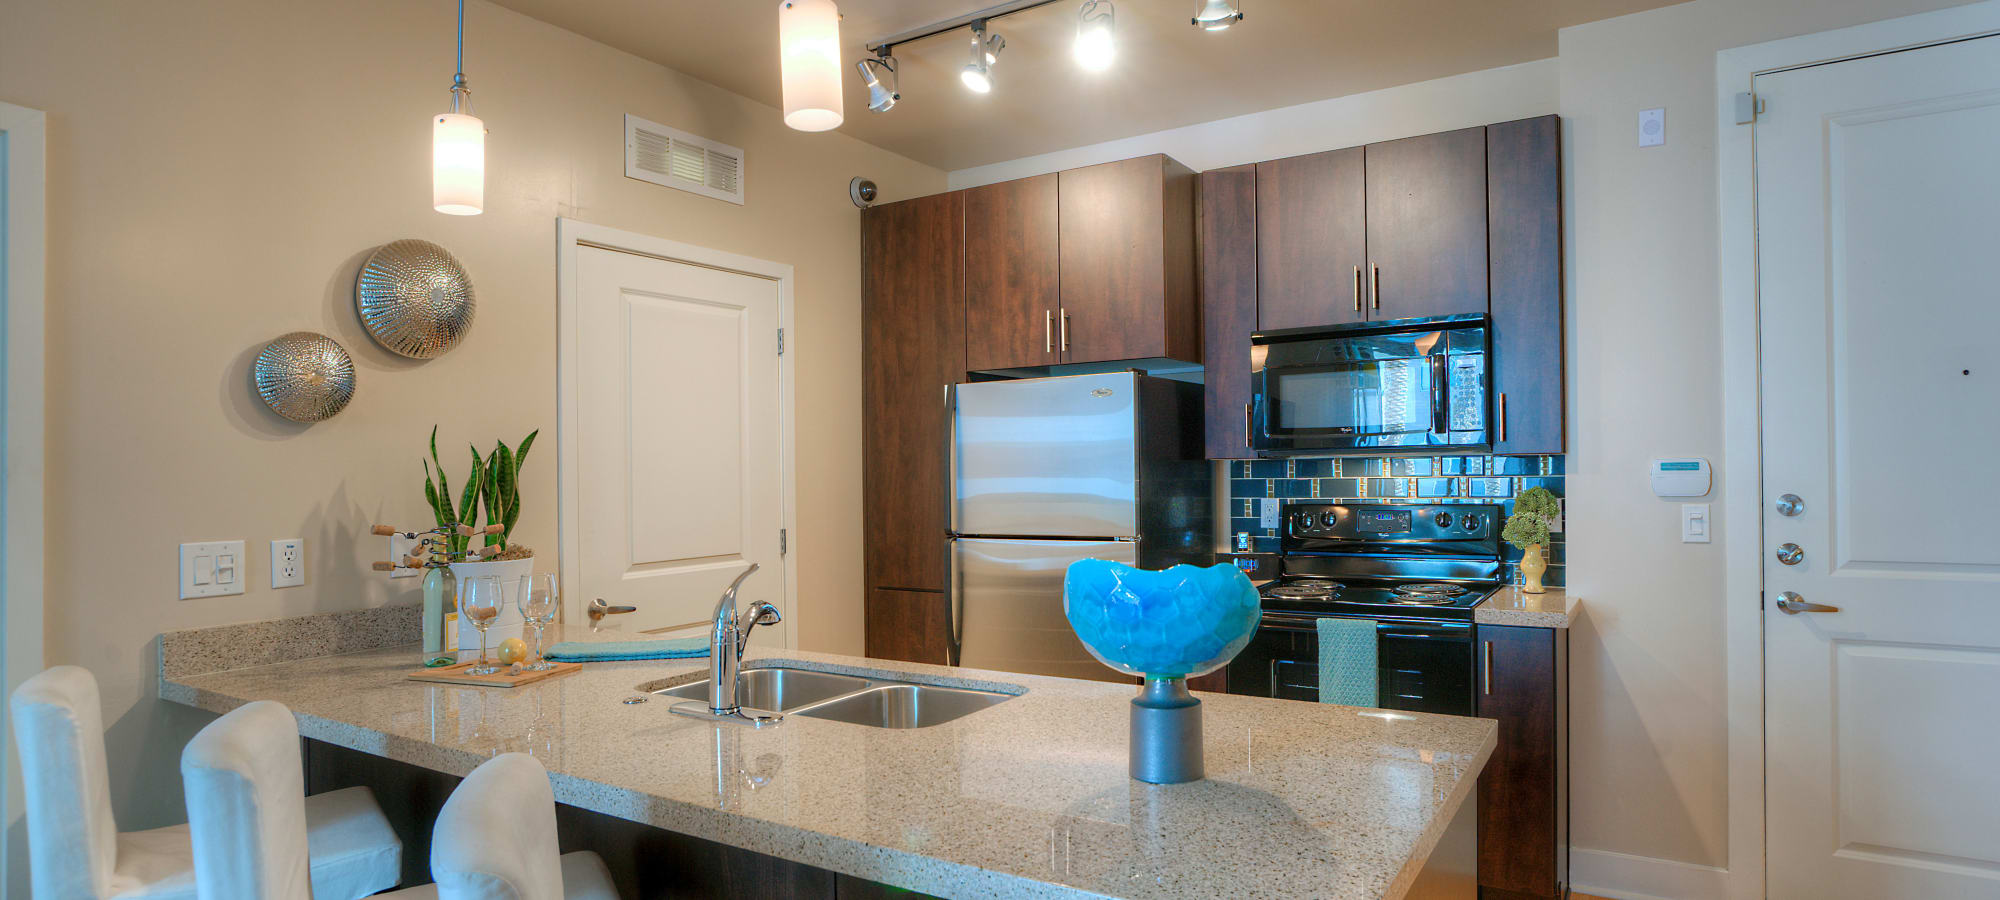 Granite countertops and stainless-steel appliances in model home's kitchen at Level at Sixteenth in Phoenix, Arizona